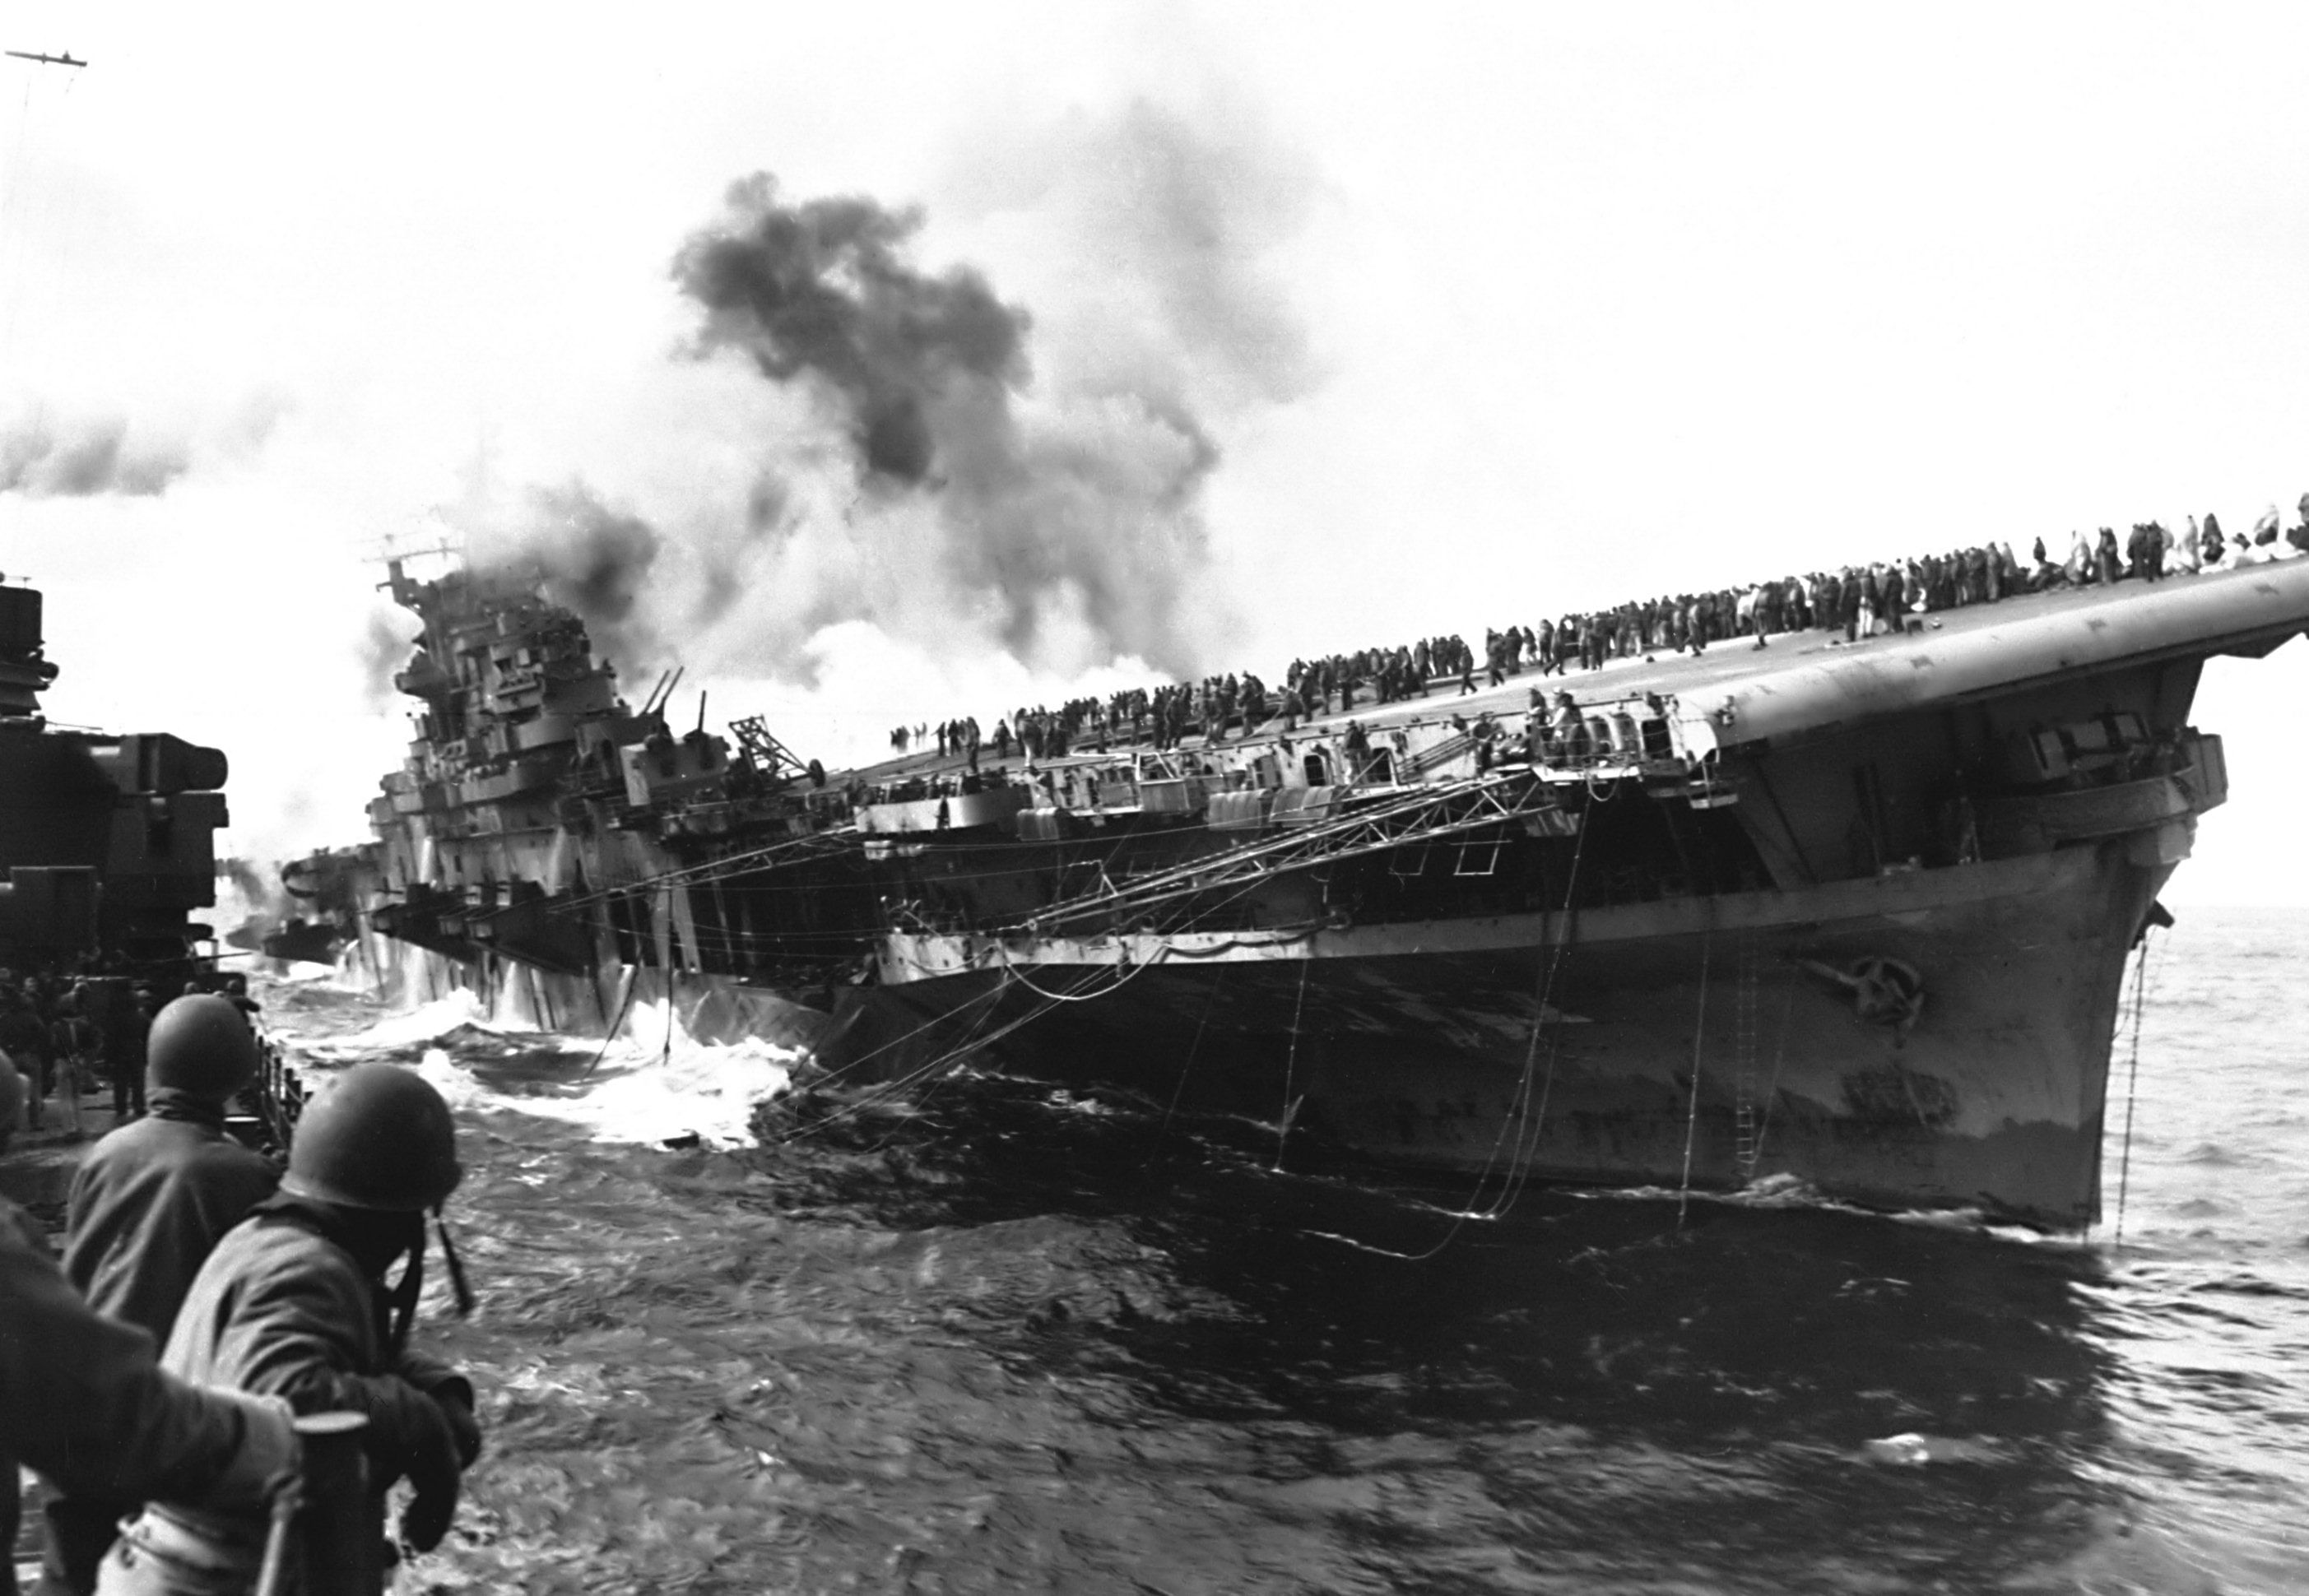 Uss Franklin Aircraft Carrier With Images